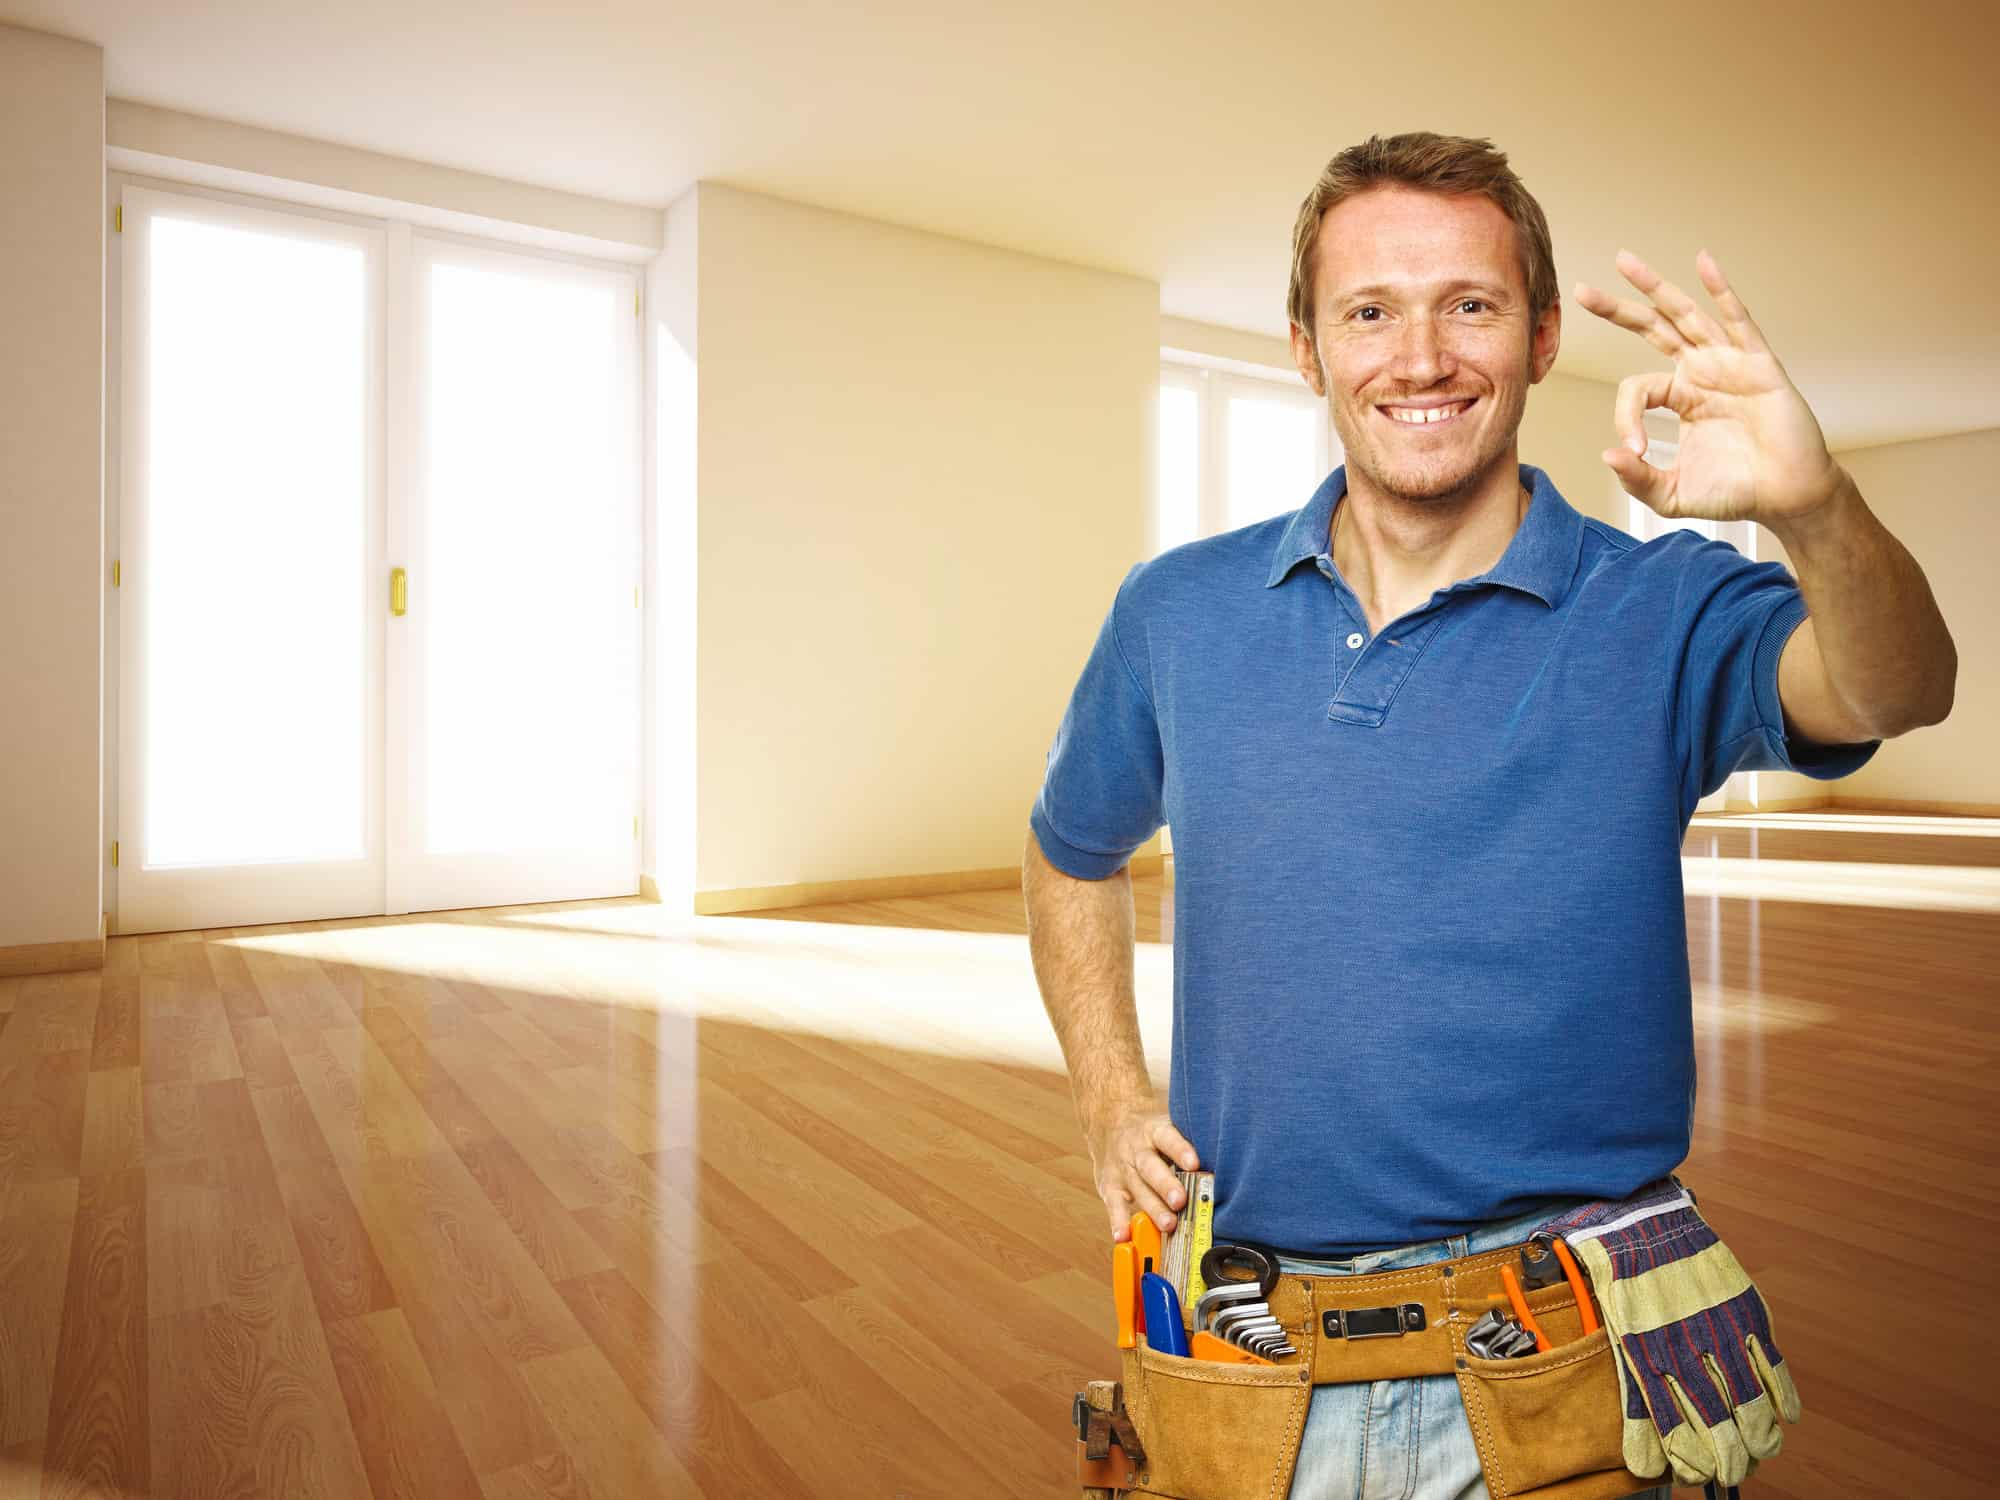 Handyman SEO Services and Solutions